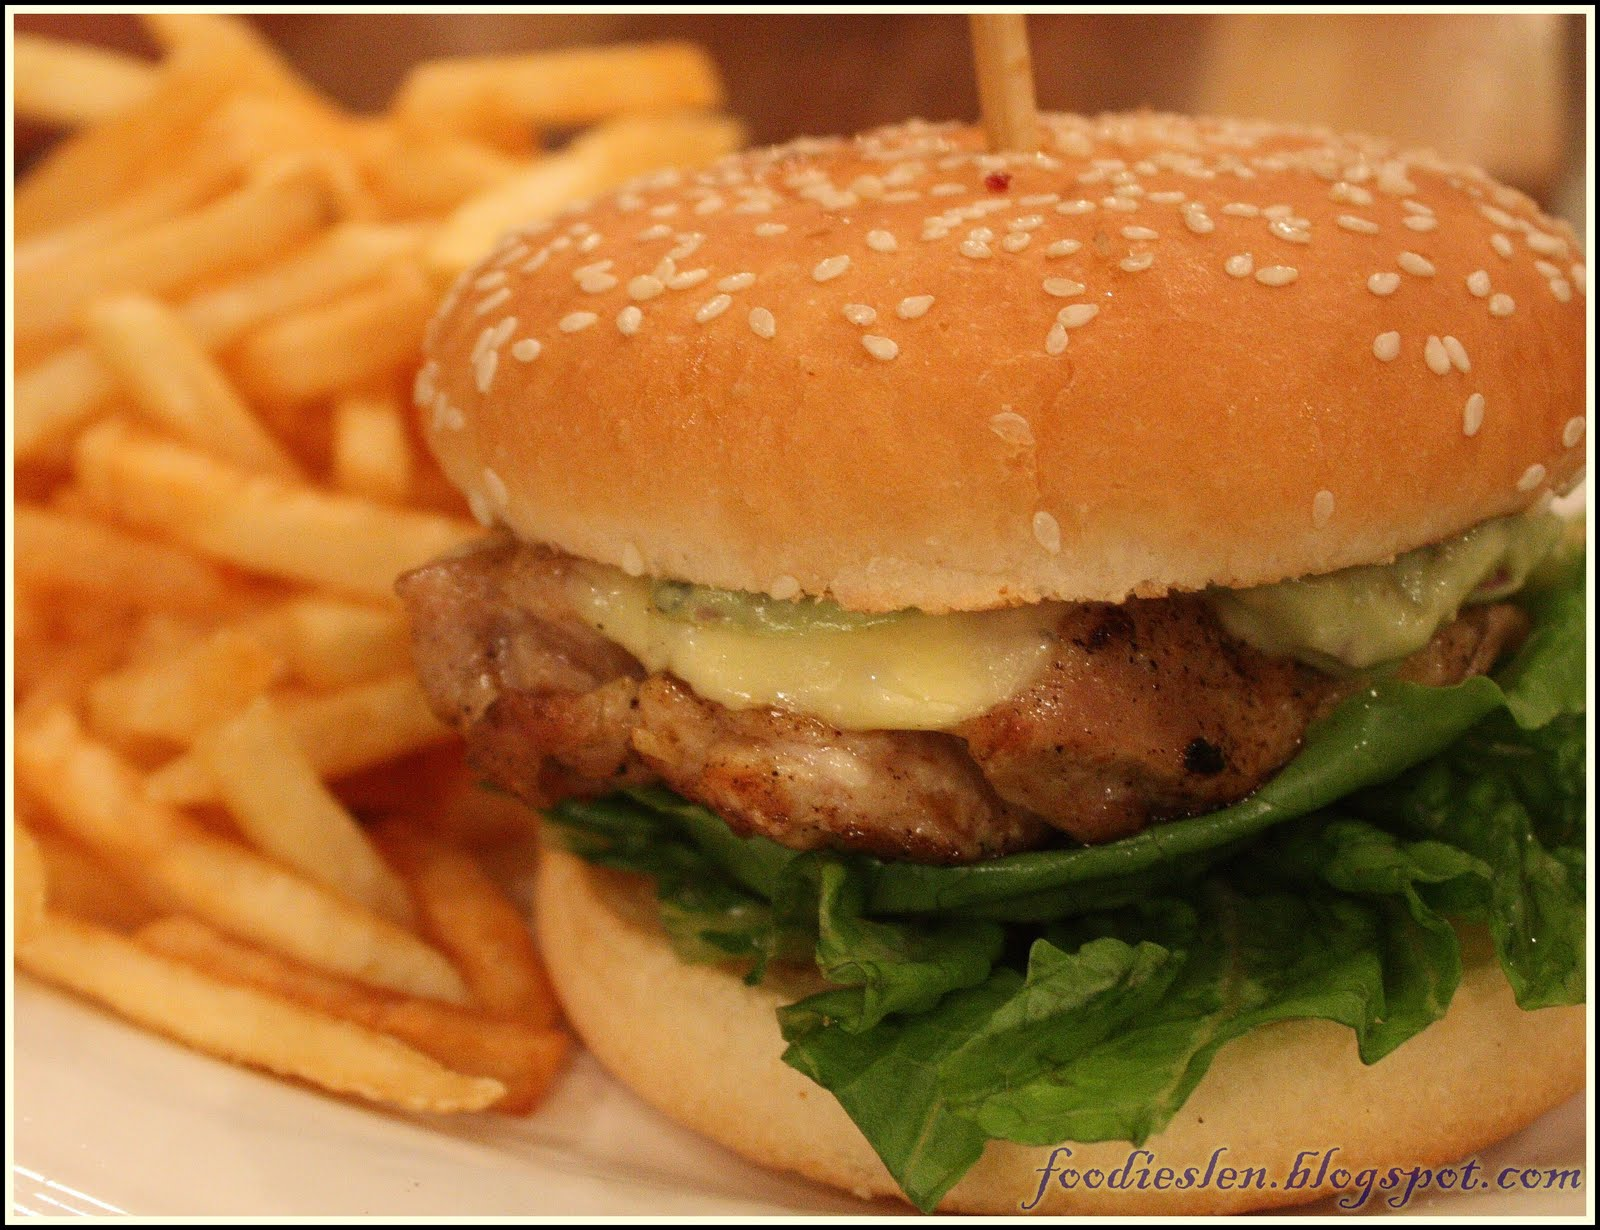 images of chicken burgers - photo #28